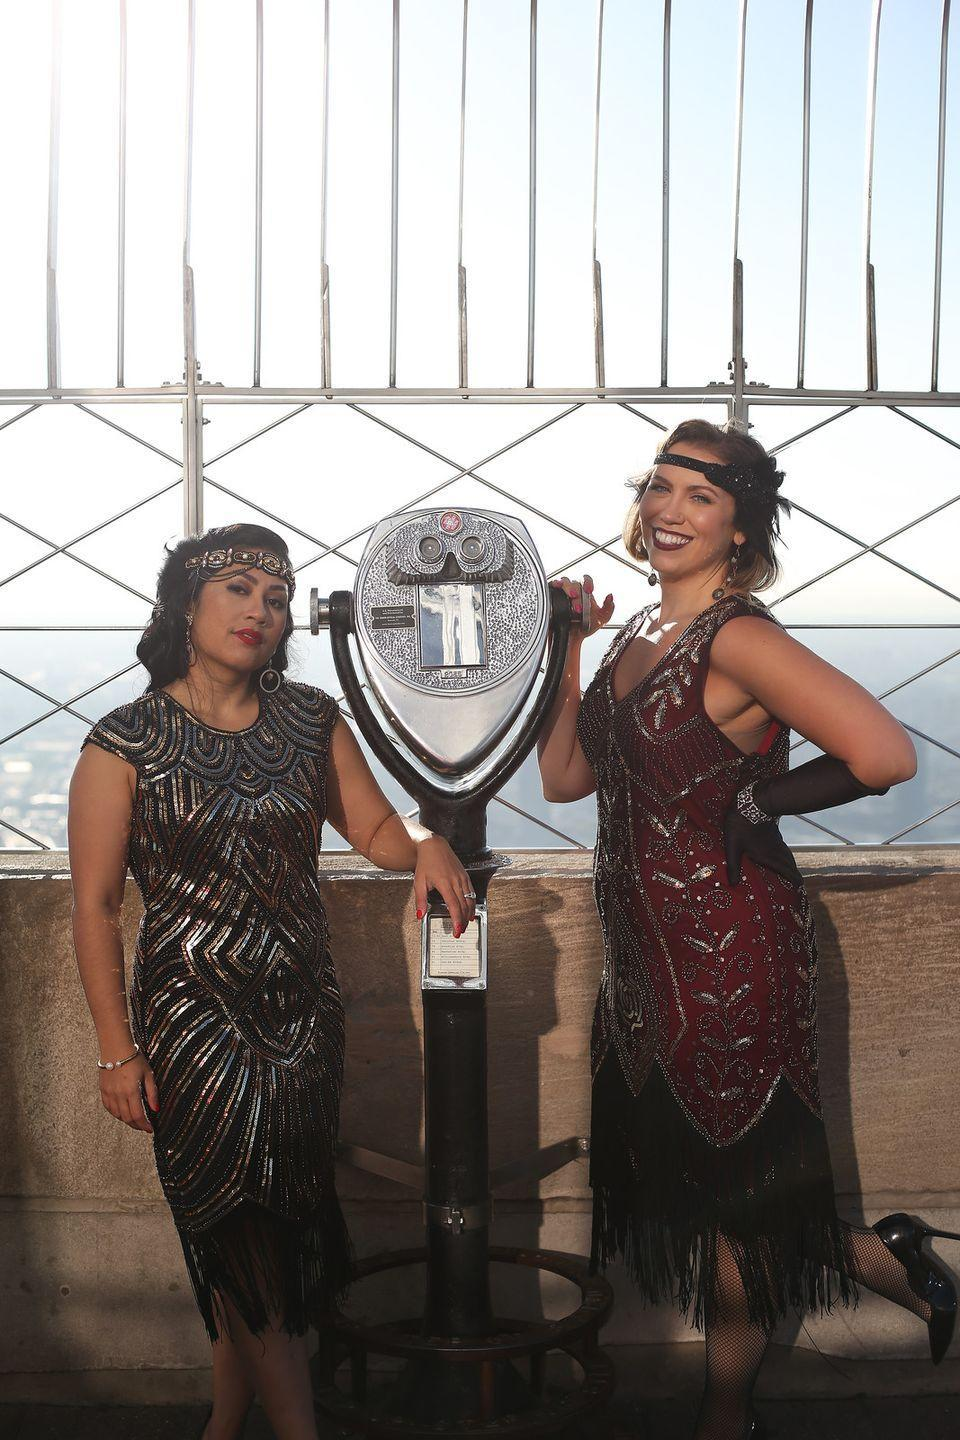 """<p>The roaring 20s are back (for one night only): Take a step back in time by wearing your finest flapper dresses, embellished headbands, and glitzy accessories to match. </p><p><em><a href=""""http://livingaftermidnite.com/2019/10/group-halloween-costumes-that-will-win-you-best-dressed.html"""" rel=""""nofollow noopener"""" target=""""_blank"""" data-ylk=""""slk:Get the tutorial at Living After Midnite >>"""" class=""""link rapid-noclick-resp"""">Get the tutorial at Living After Midnite >></a><br></em></p>"""